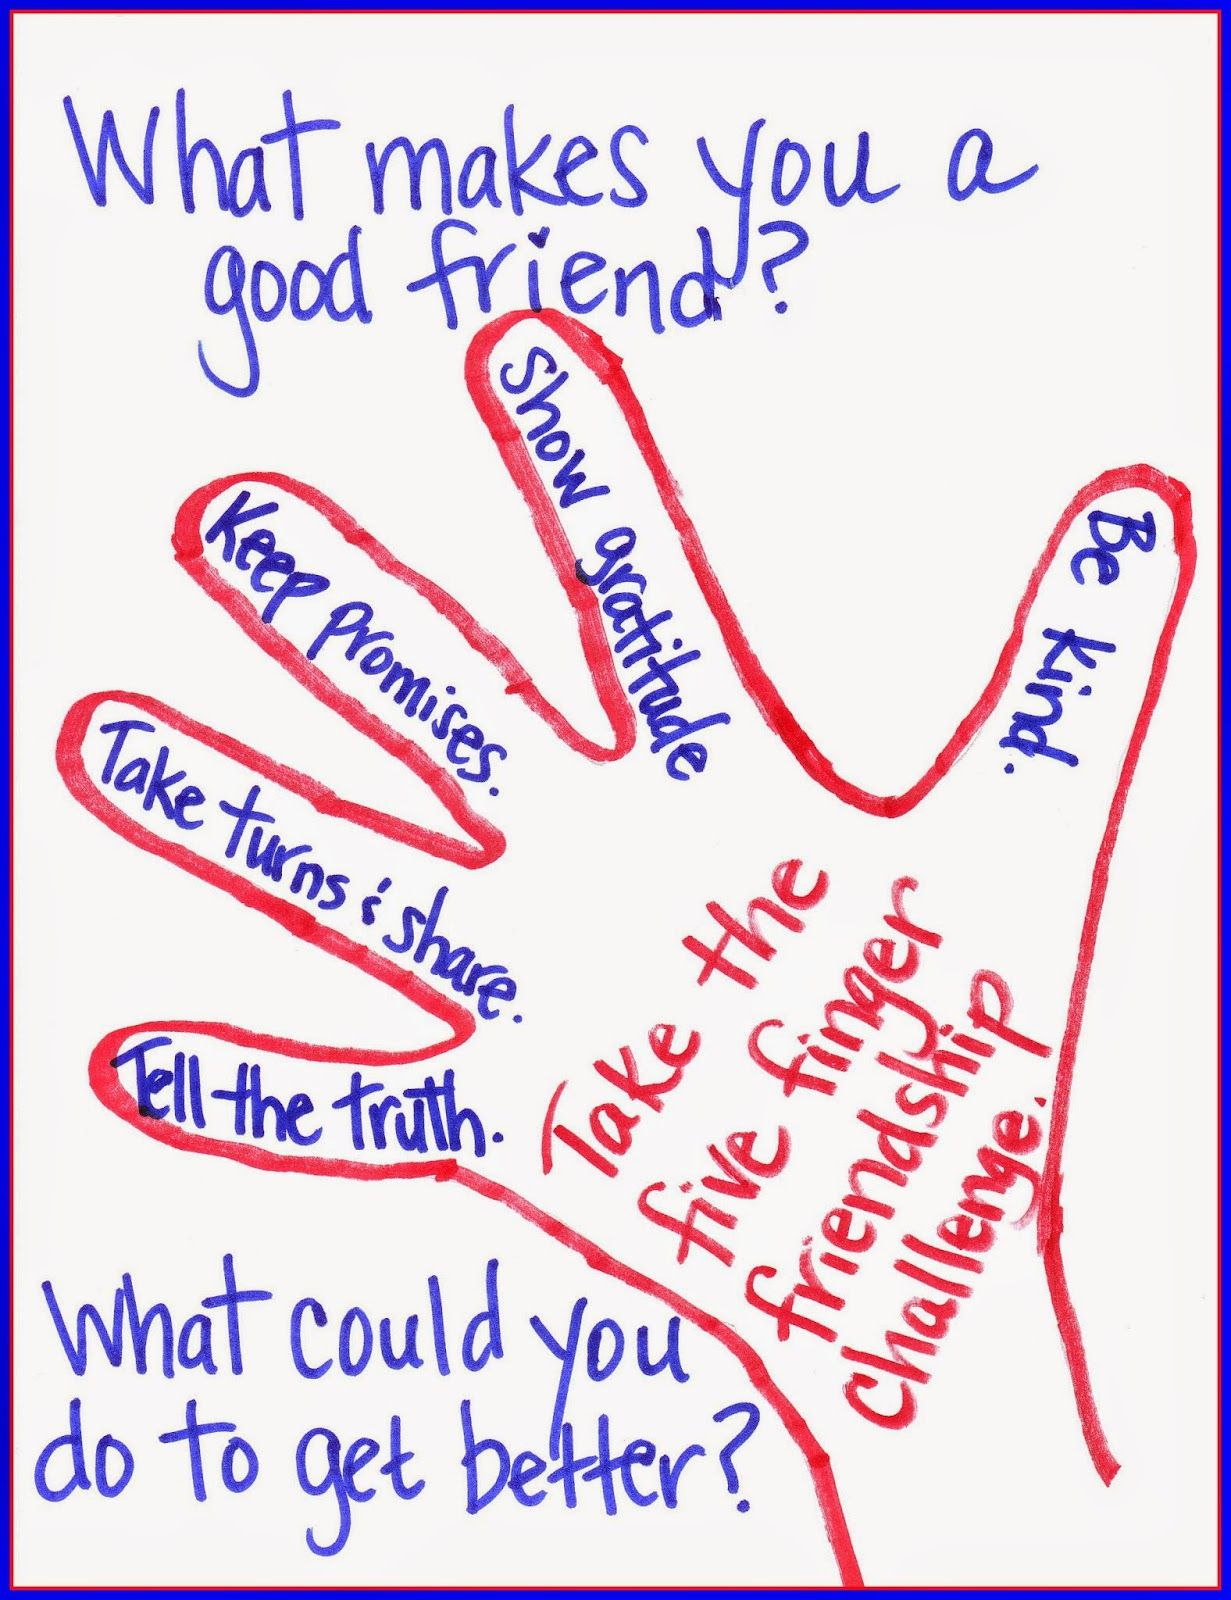 How Do You Help Put Healthy Friendships In Their Hands